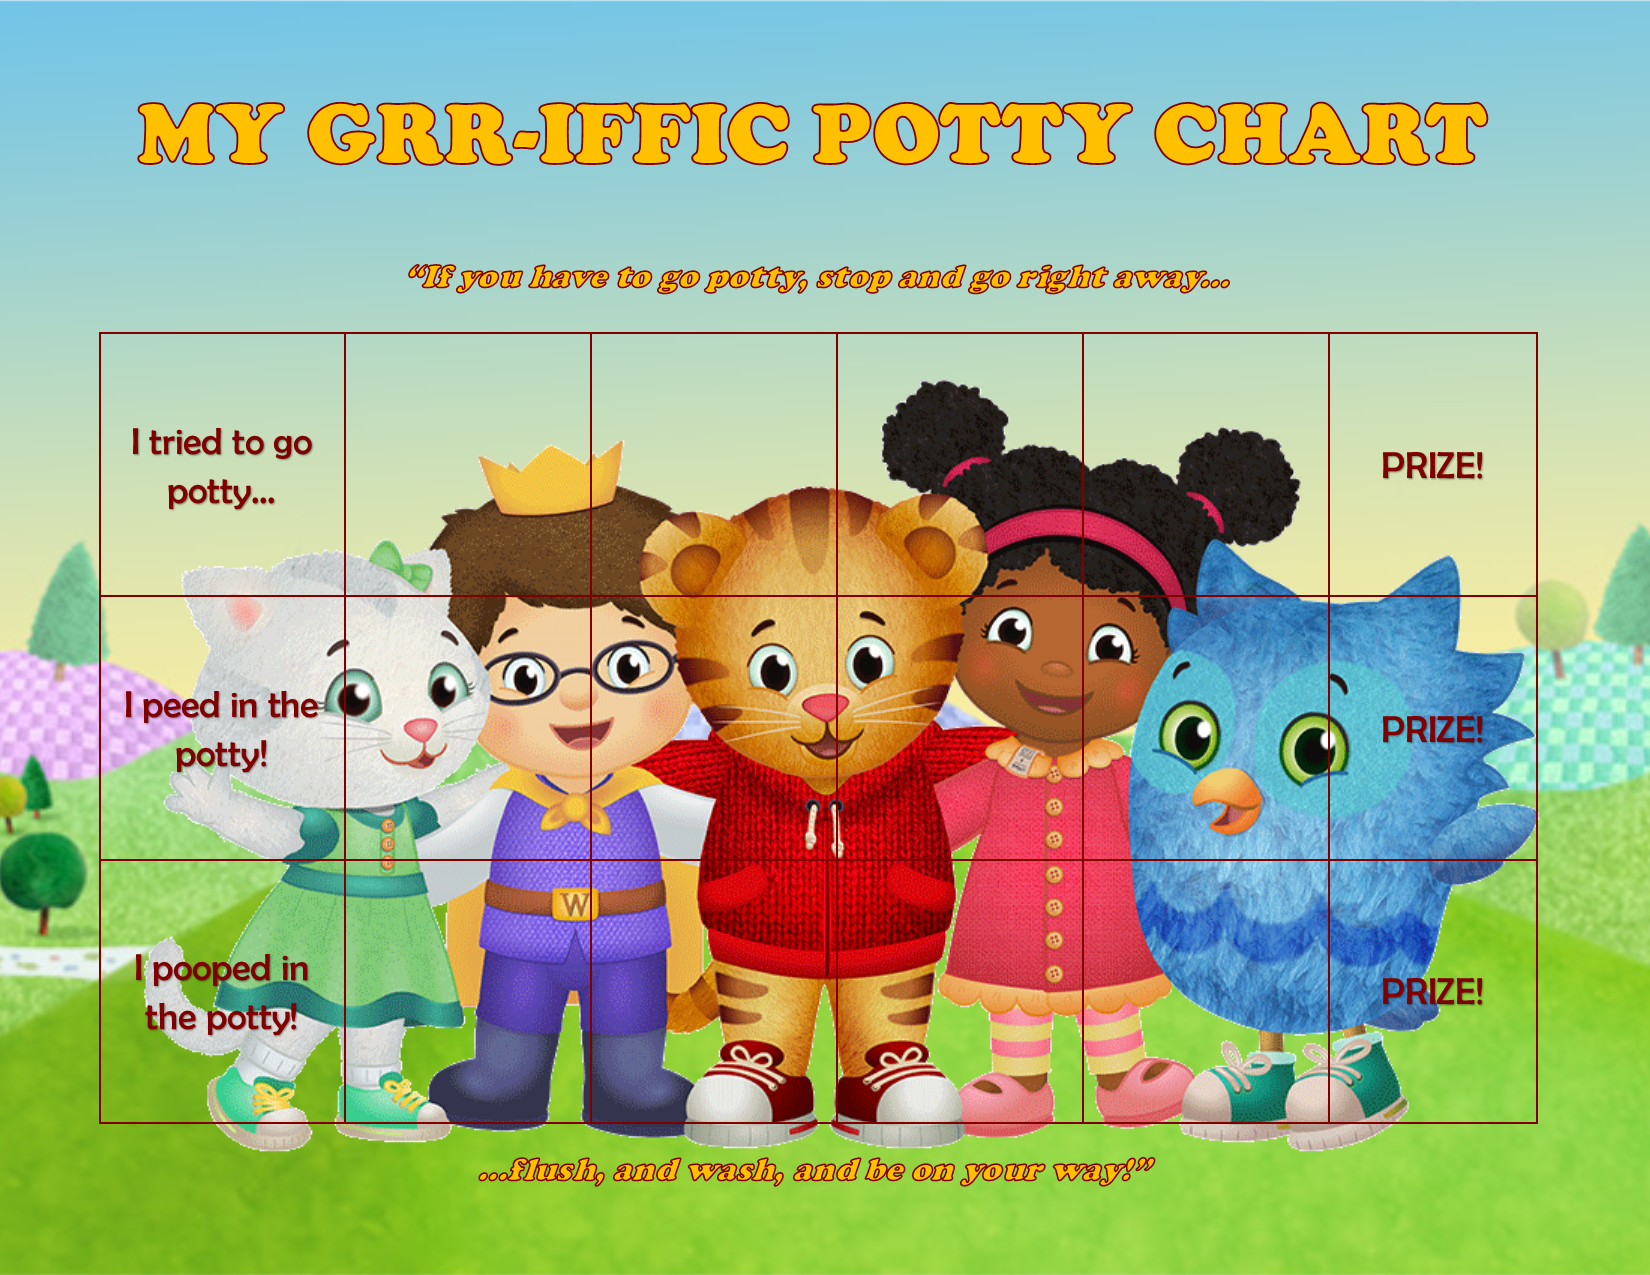 I Created This Potty Chart For My 3yo Since He Absolutely Loves Daniel Tiger This Image Should Be A Perfect Fit Potty Chart Potty Training Chart Toddler Play